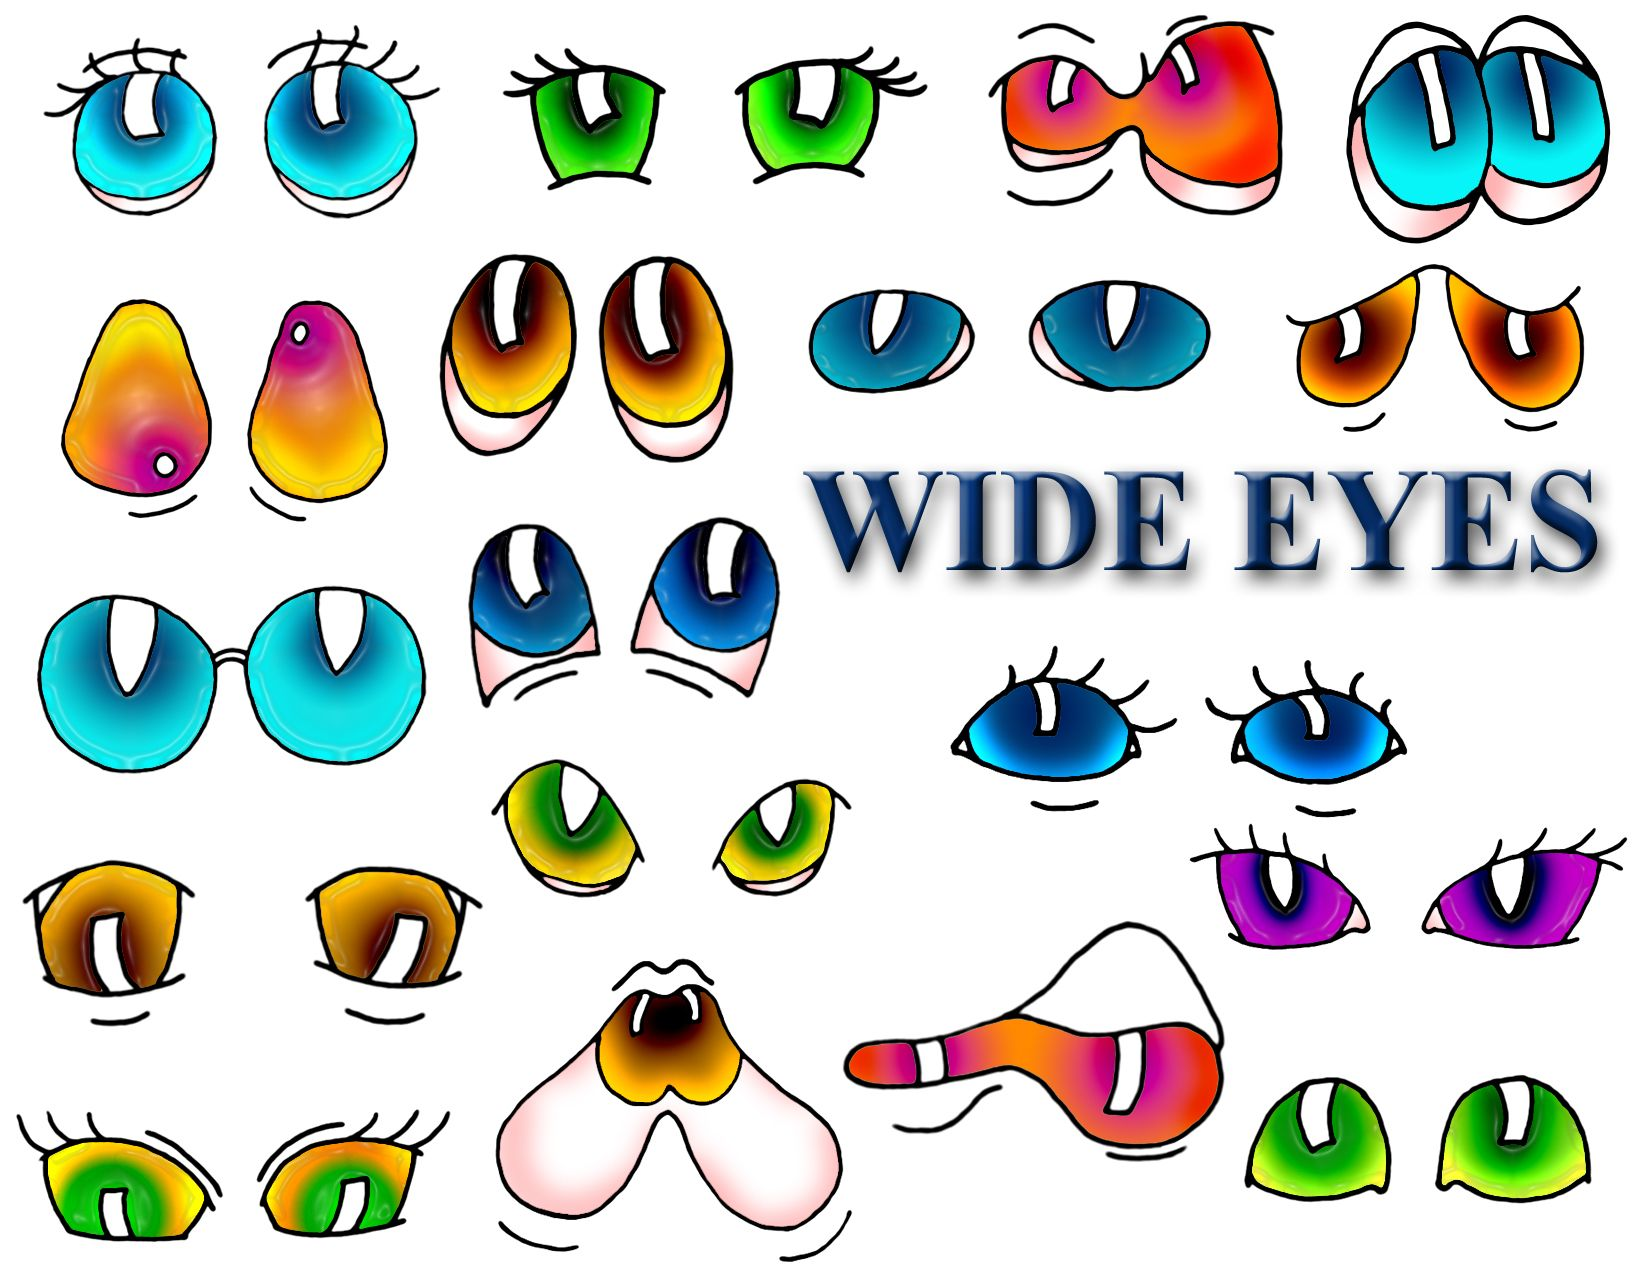 medium resolution of halloween clipart spooky eyes clip art monster eye lurking in the dark creepy scary hallowe en for personal and commercial use